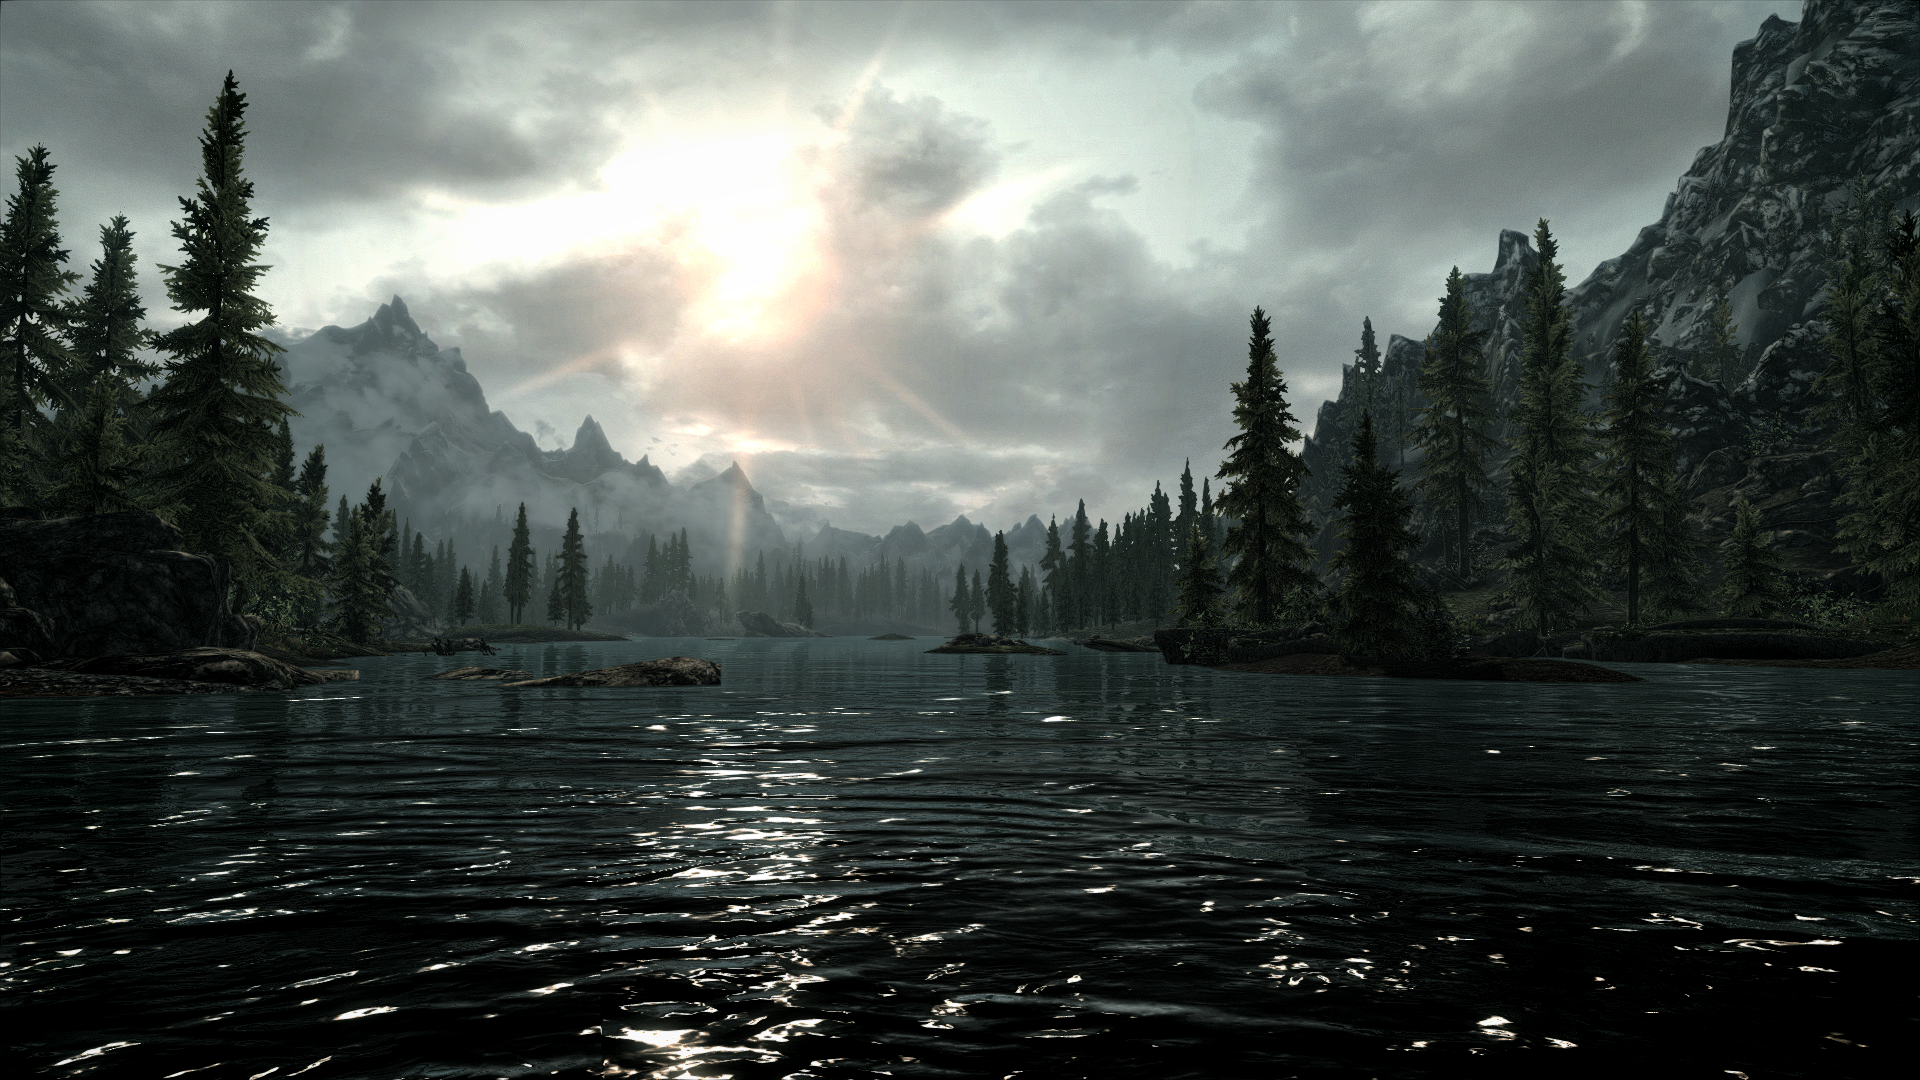 Skyrim sunset on a lake.